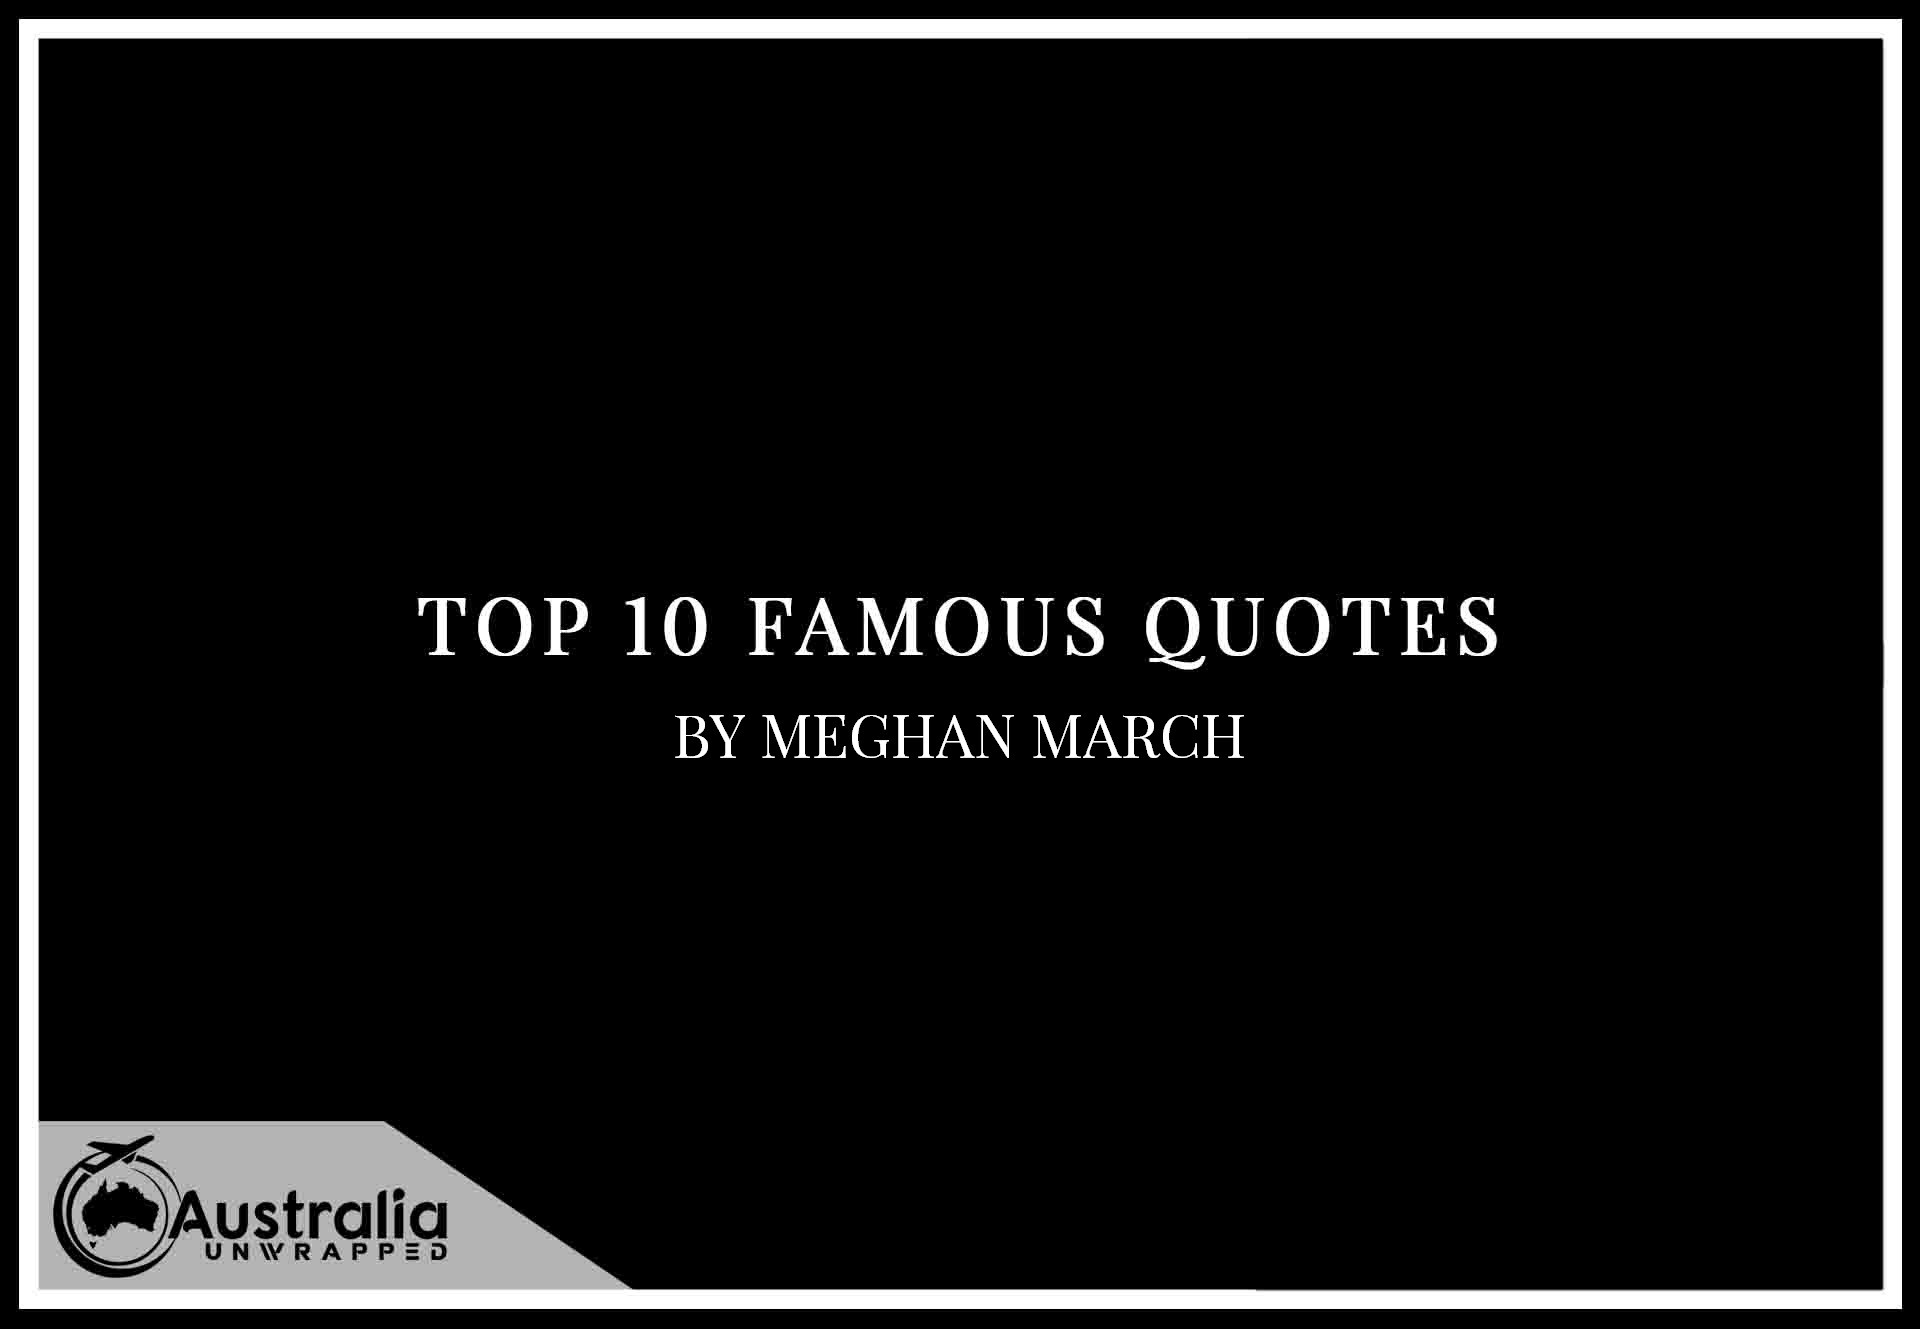 Top 10 Famous Quotes by Author Meghan March